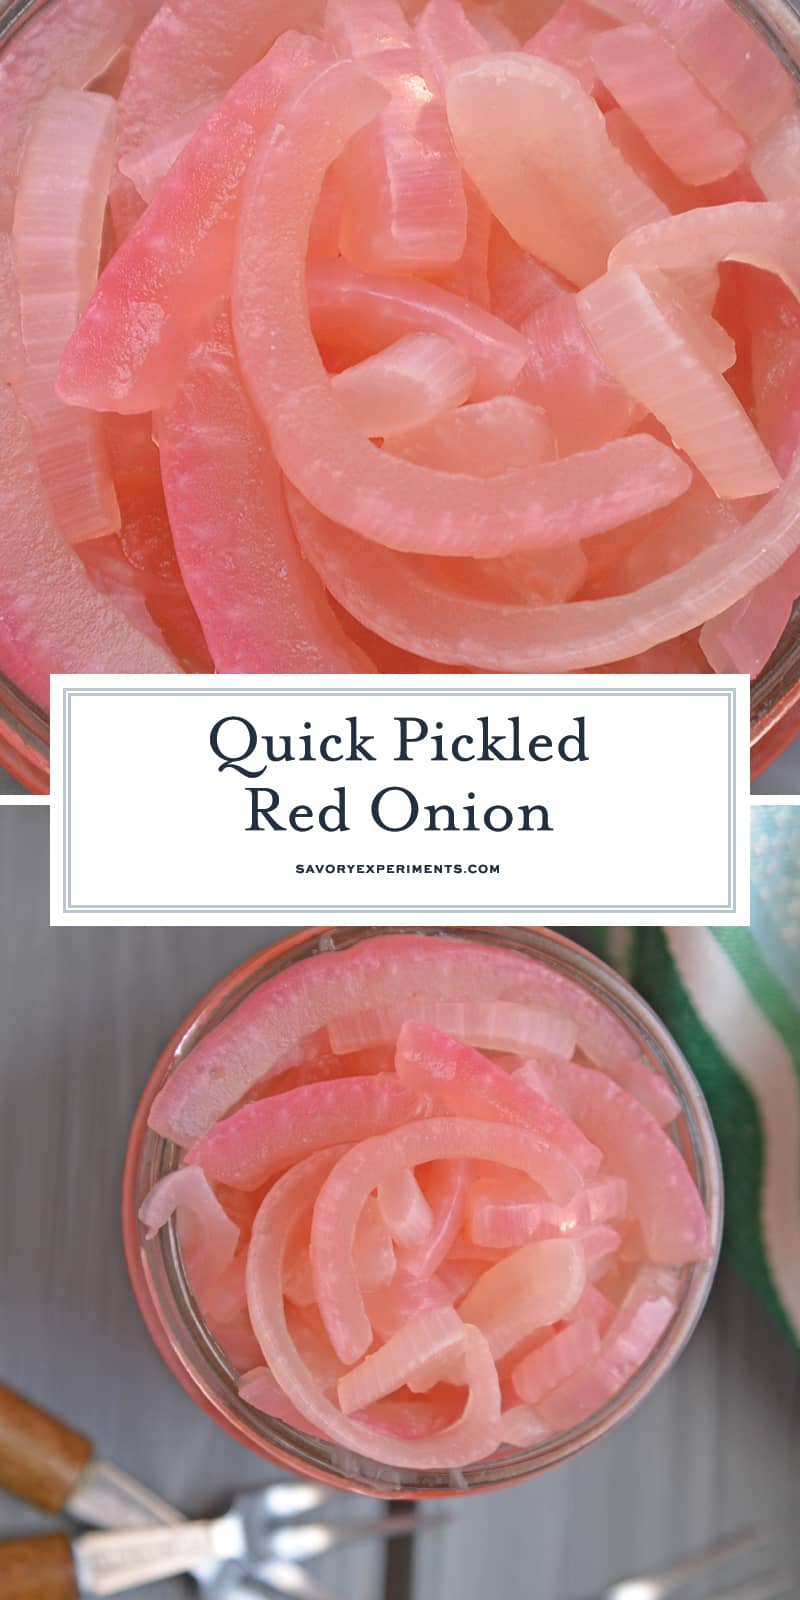 Quick Pickled Red Onion will quickly become the only pickled onions you ever make, with just 3 ingredients and limited prep time! #pickledonions #pickledredonions #howtopickleonions www.savoryexperiments.com